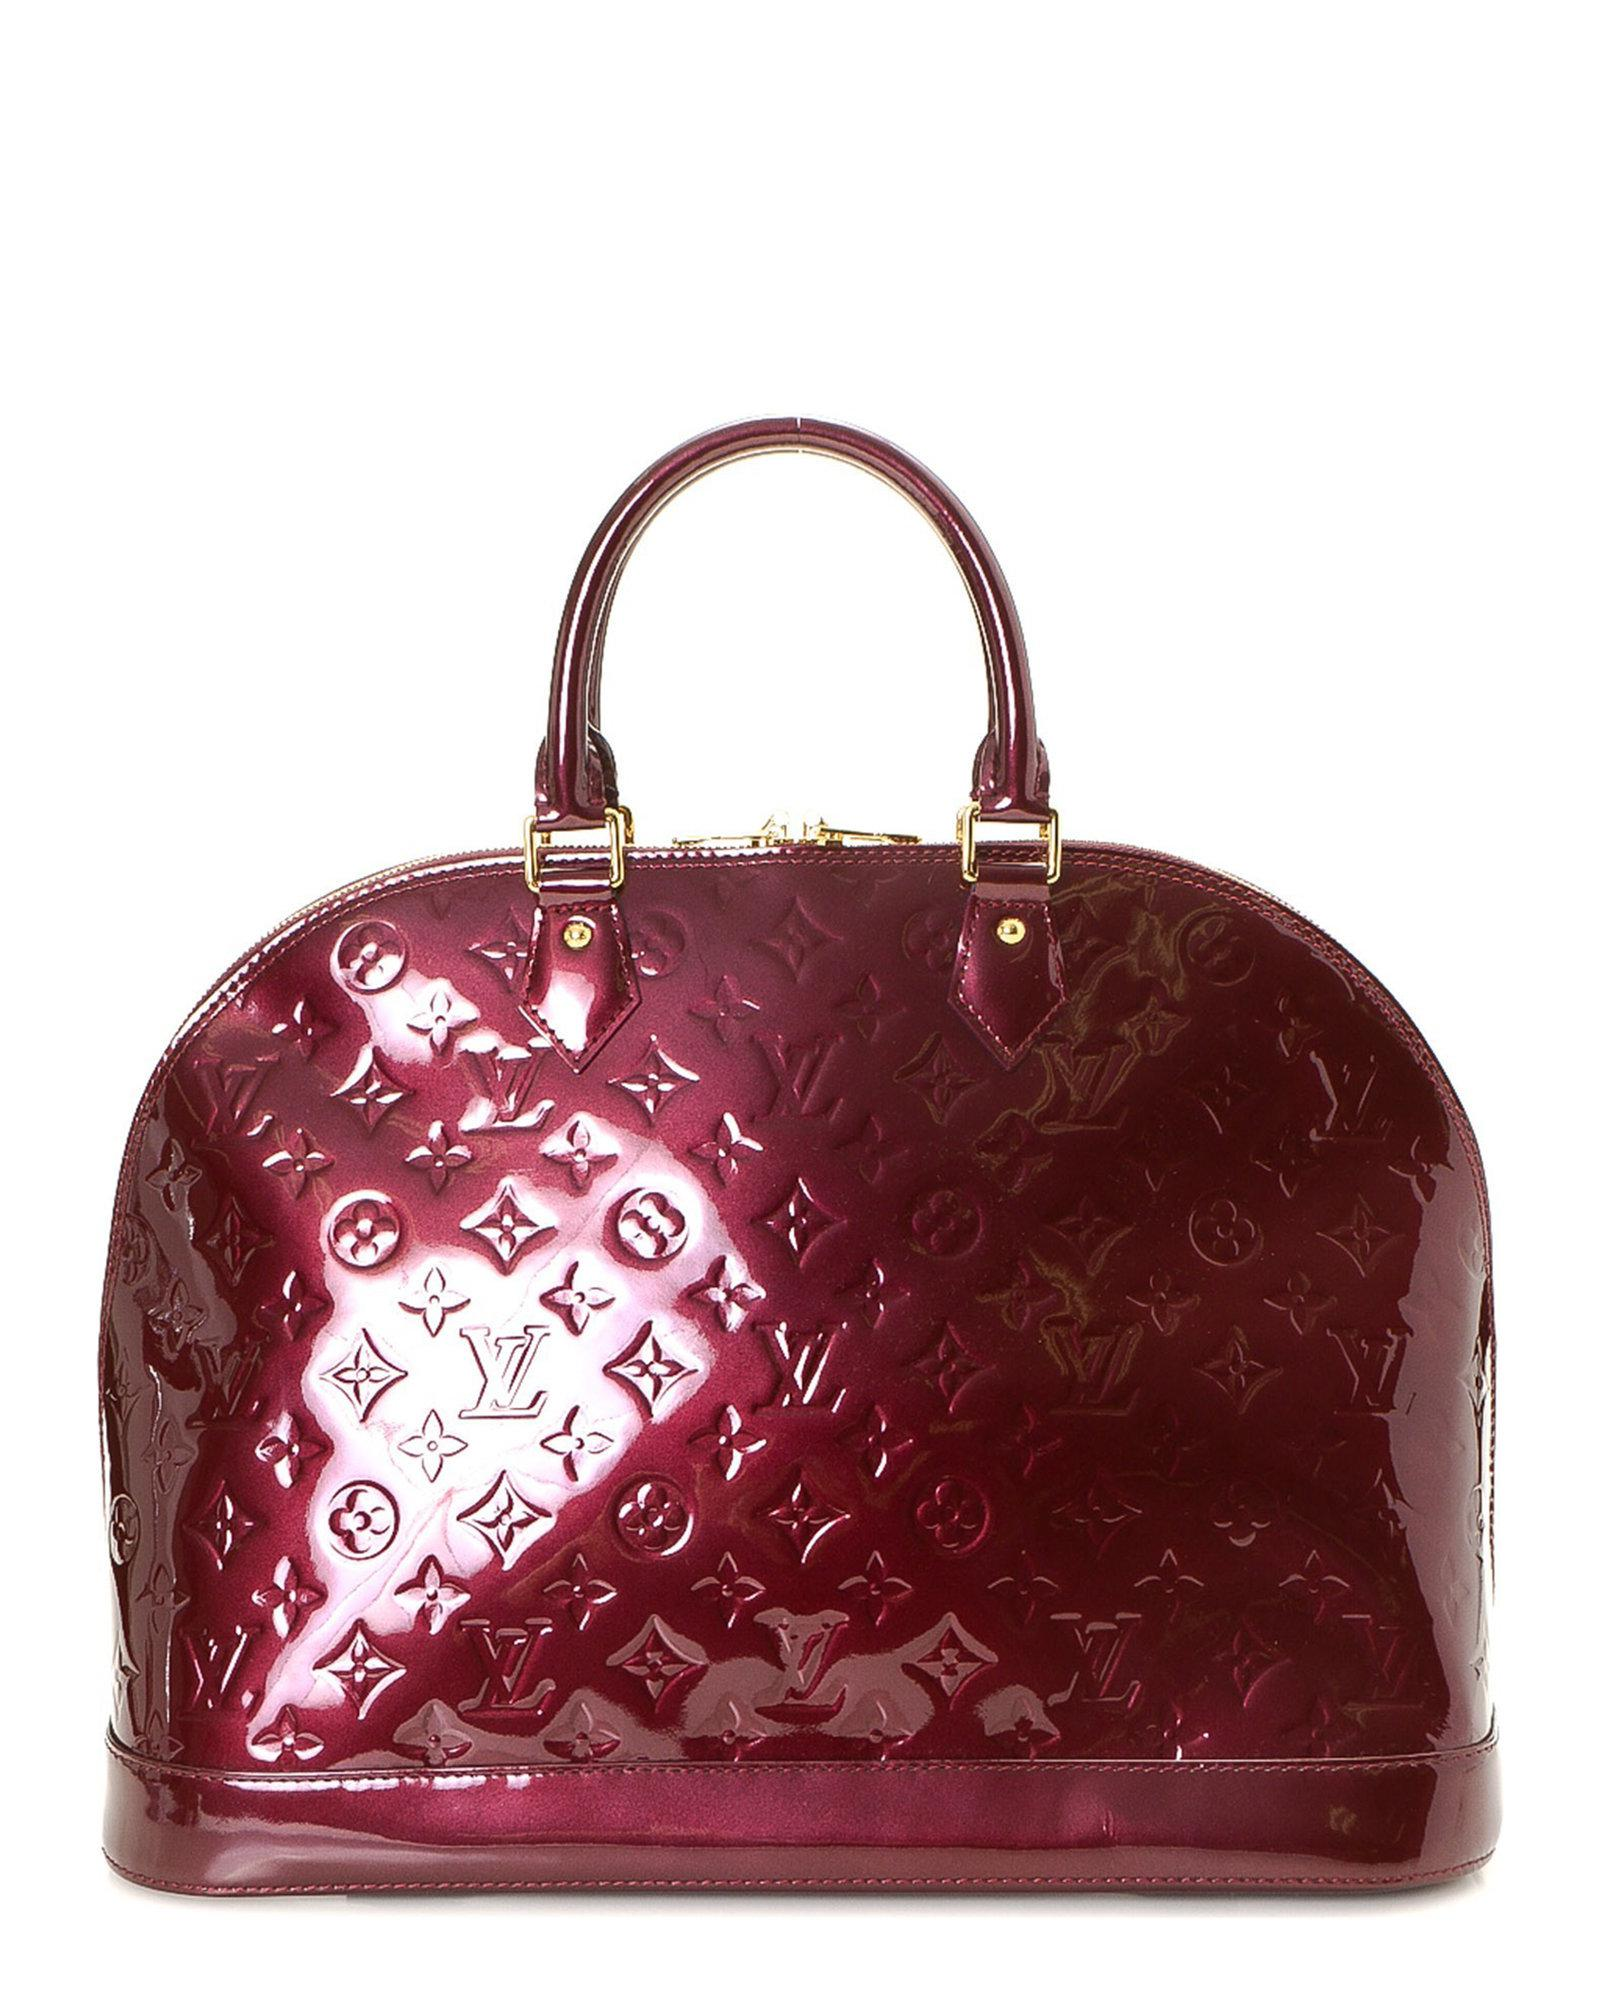 78049ebd0359 Lyst - Louis Vuitton Handbag - Vintage in Red